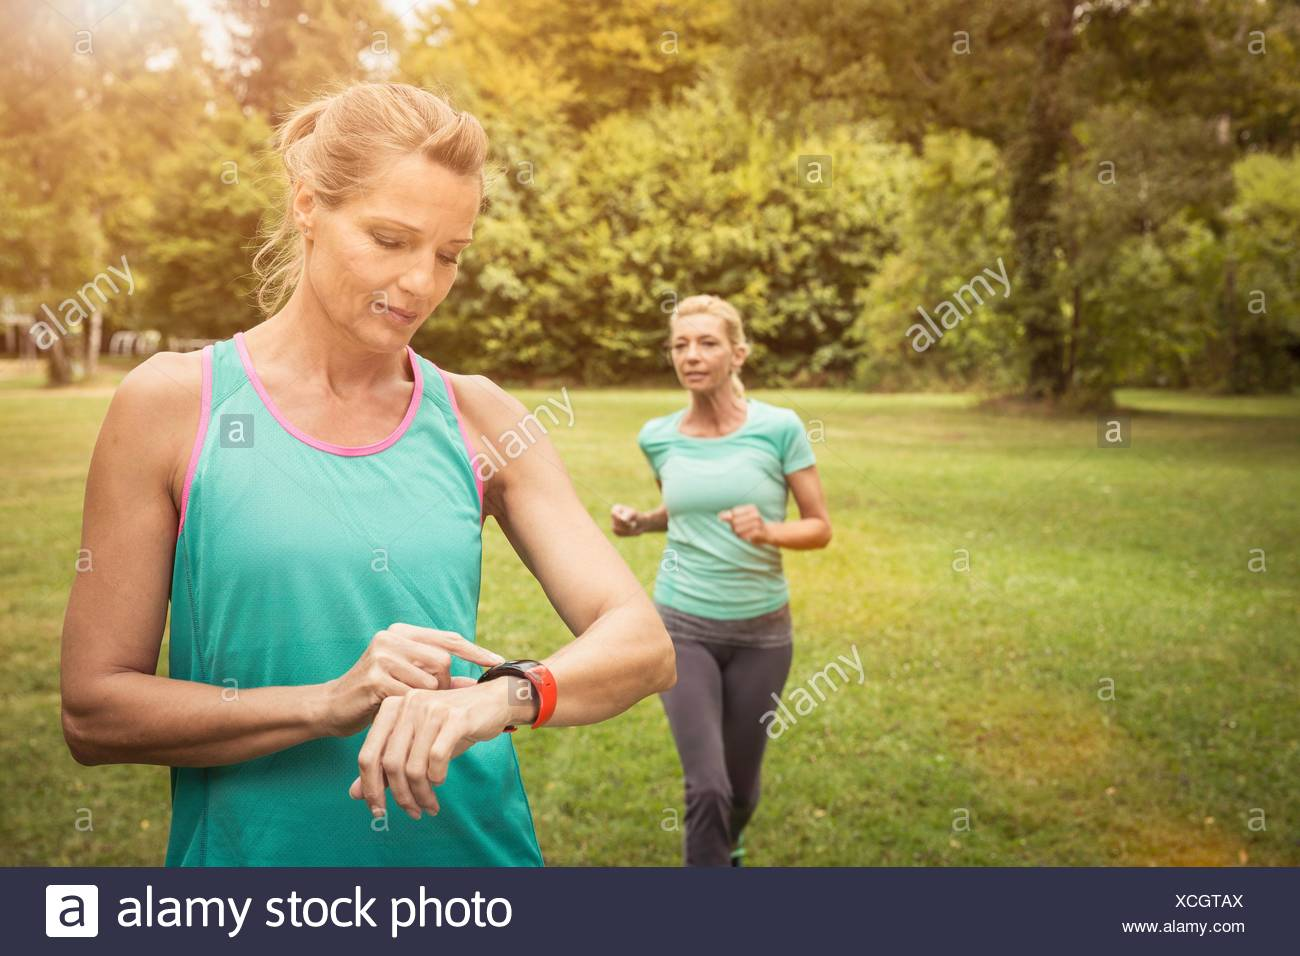 Mature women jogging in park, checking heart rate monitor wrist watch - Stock Image